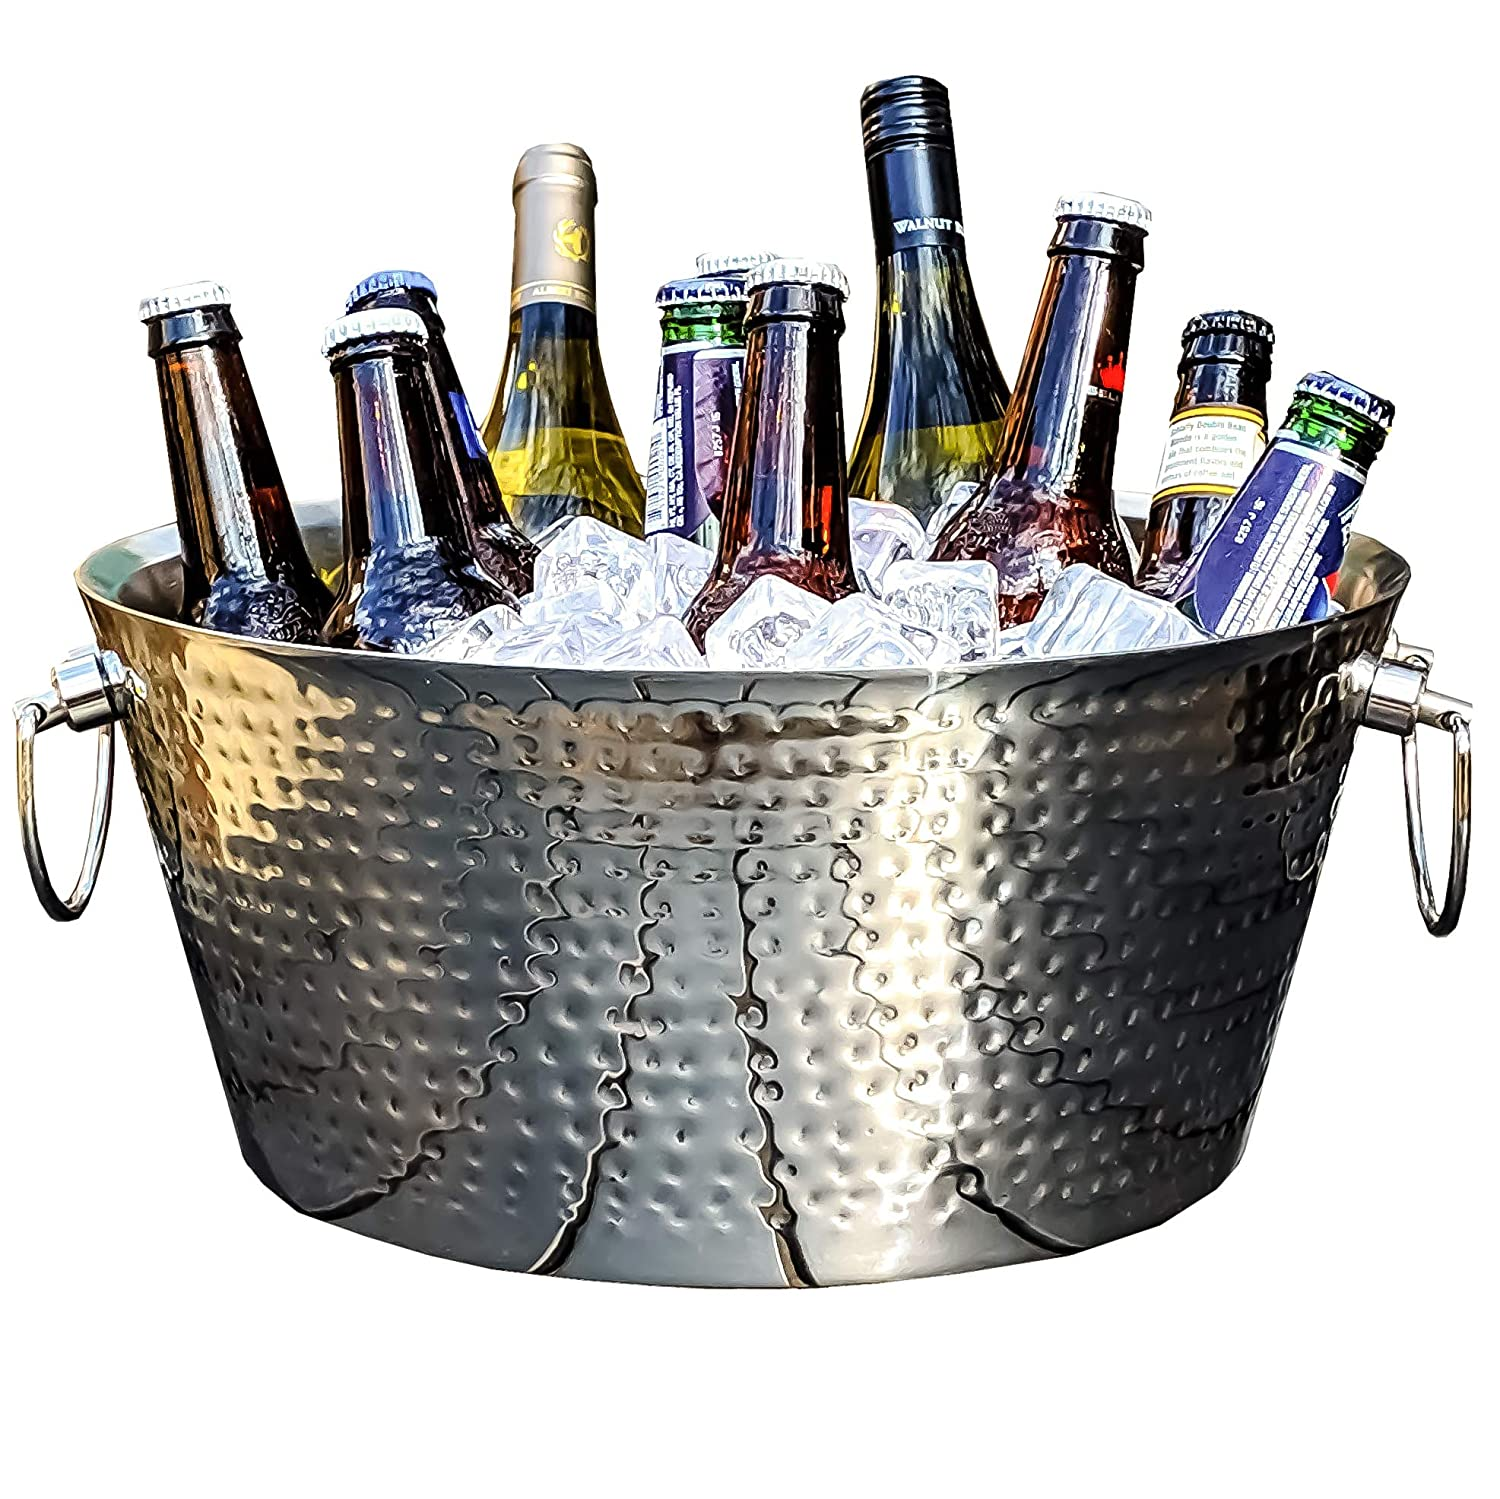 BREKX Insulated Hammered Stainless Steel Beverage Tub - Luxury Non-Sweat Wine & Beer Chiller